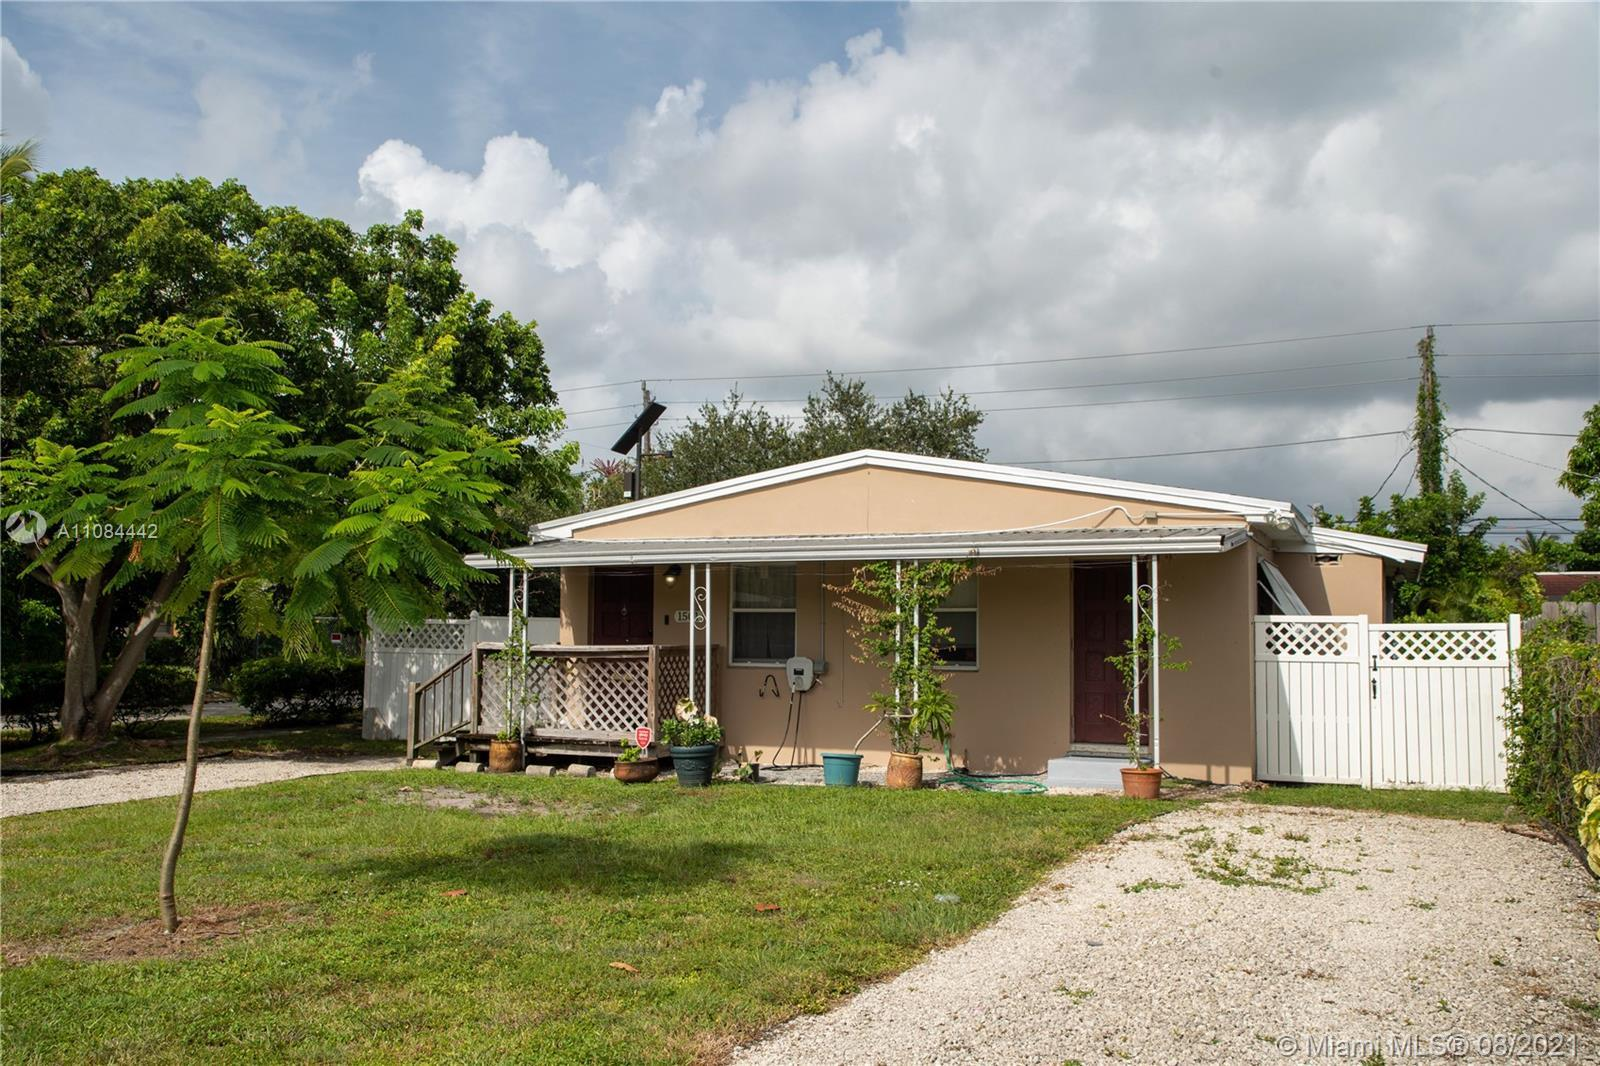 Bright and renovated 2 bed and 2 bath single family home in one of the fastest growing neighborhoods